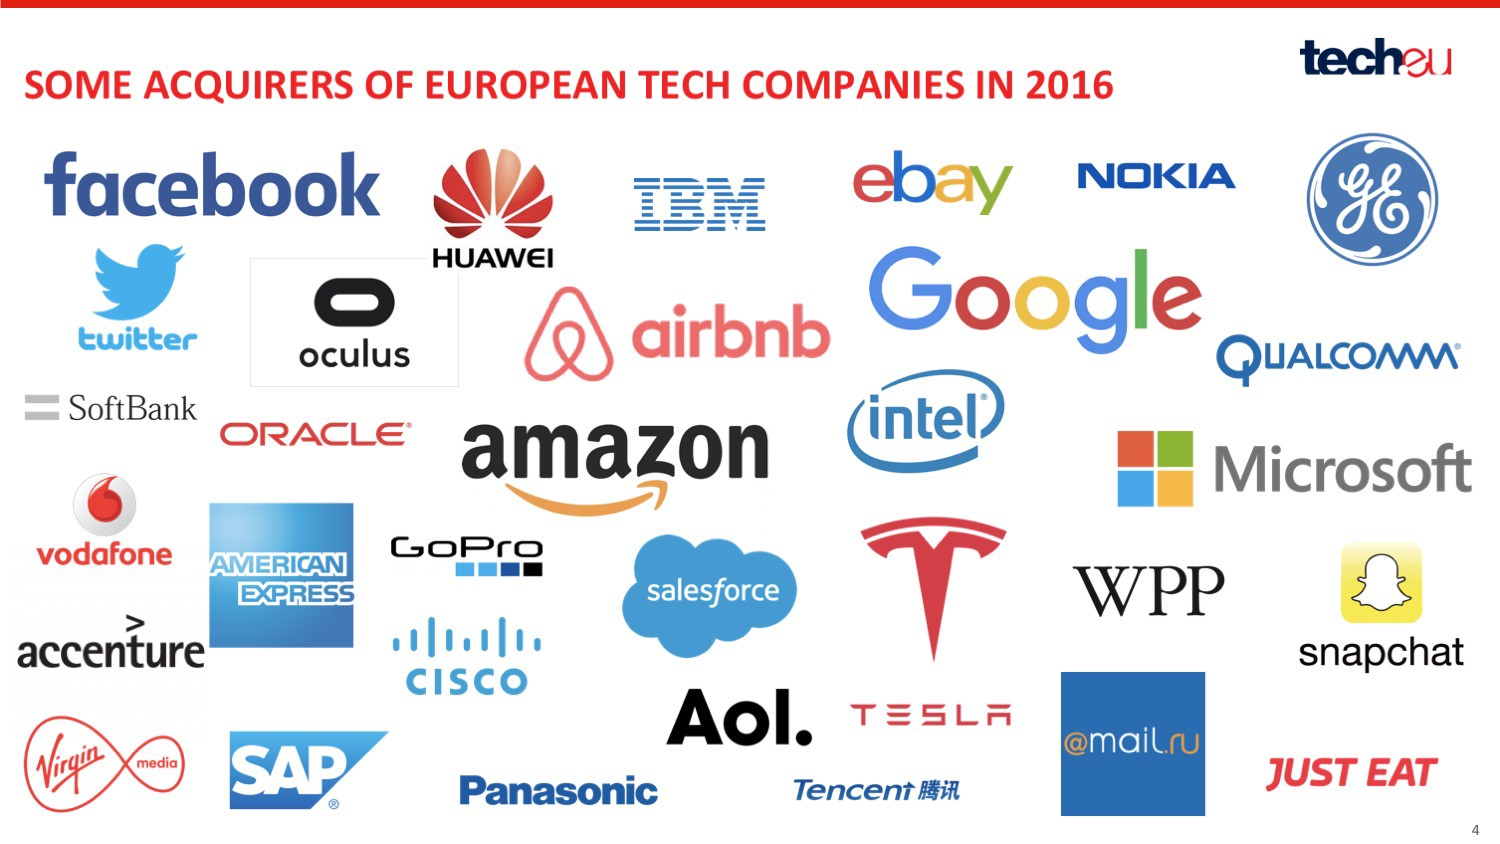 these are some of the companies that bought european tech firms in 2016